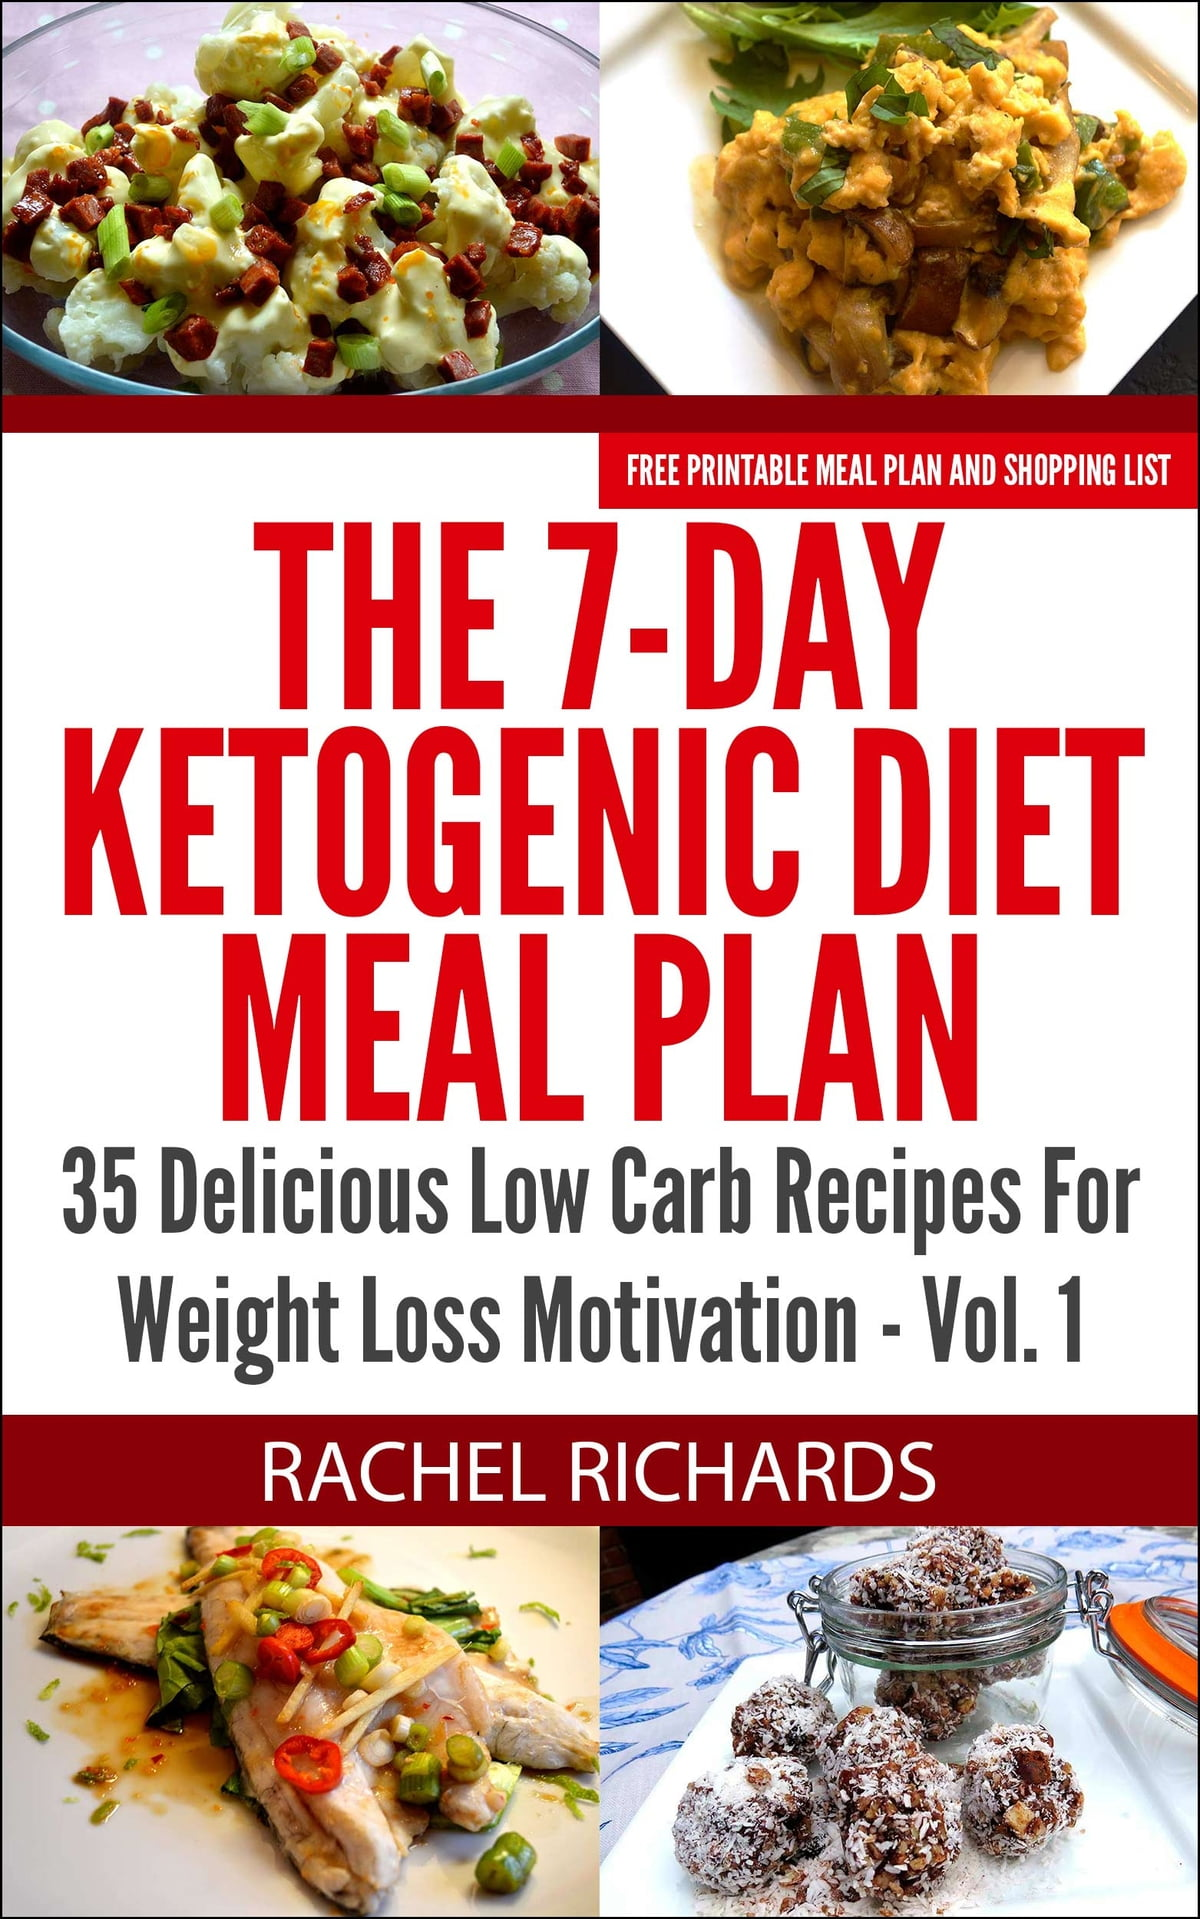 The 7 Day Ketogenic T Meal Plan 35 Delicious Low Carb Recipes For Weight Loss Motivation Volume 1 Ebook By Rachel Richards 9780993941573 Rakuten